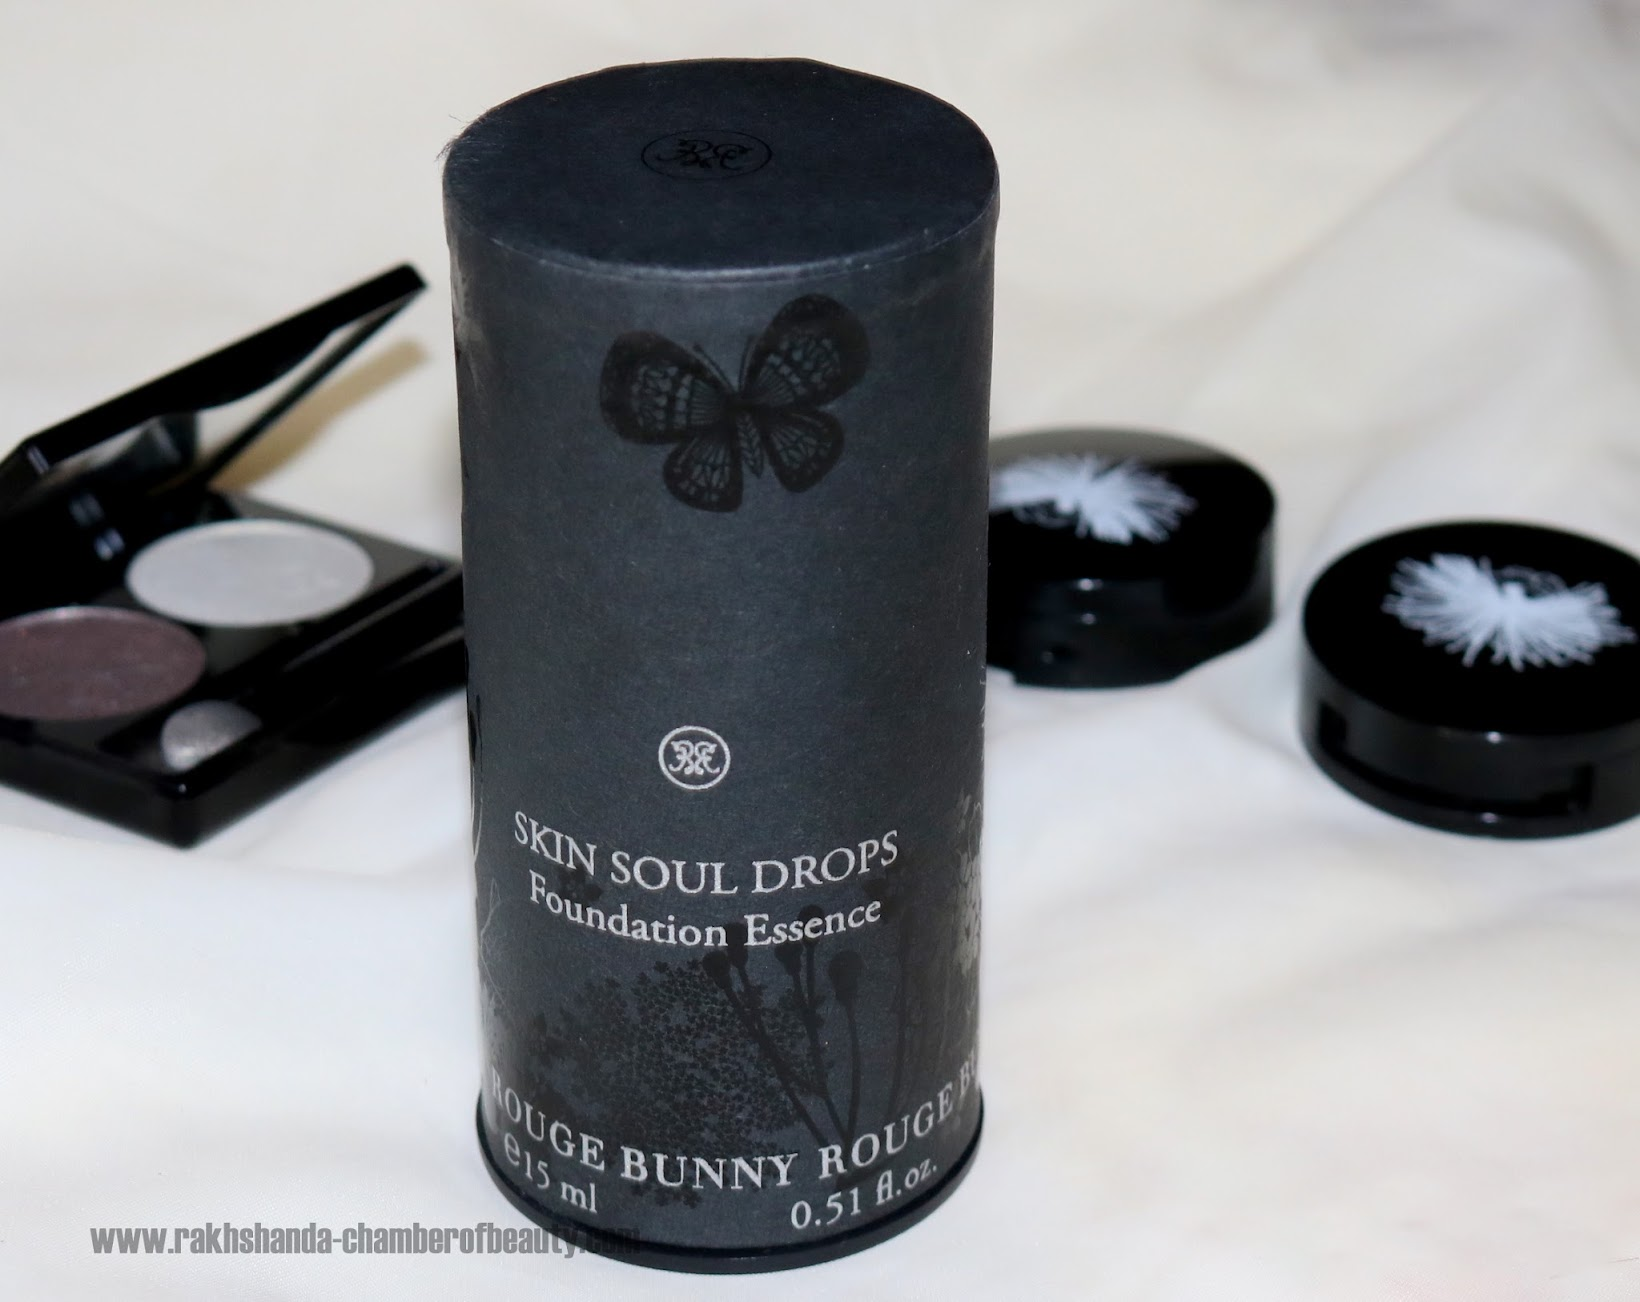 Rouge Bunny Rouge Skin Sould Drops Foundation Essence Review, Swatches & Photos